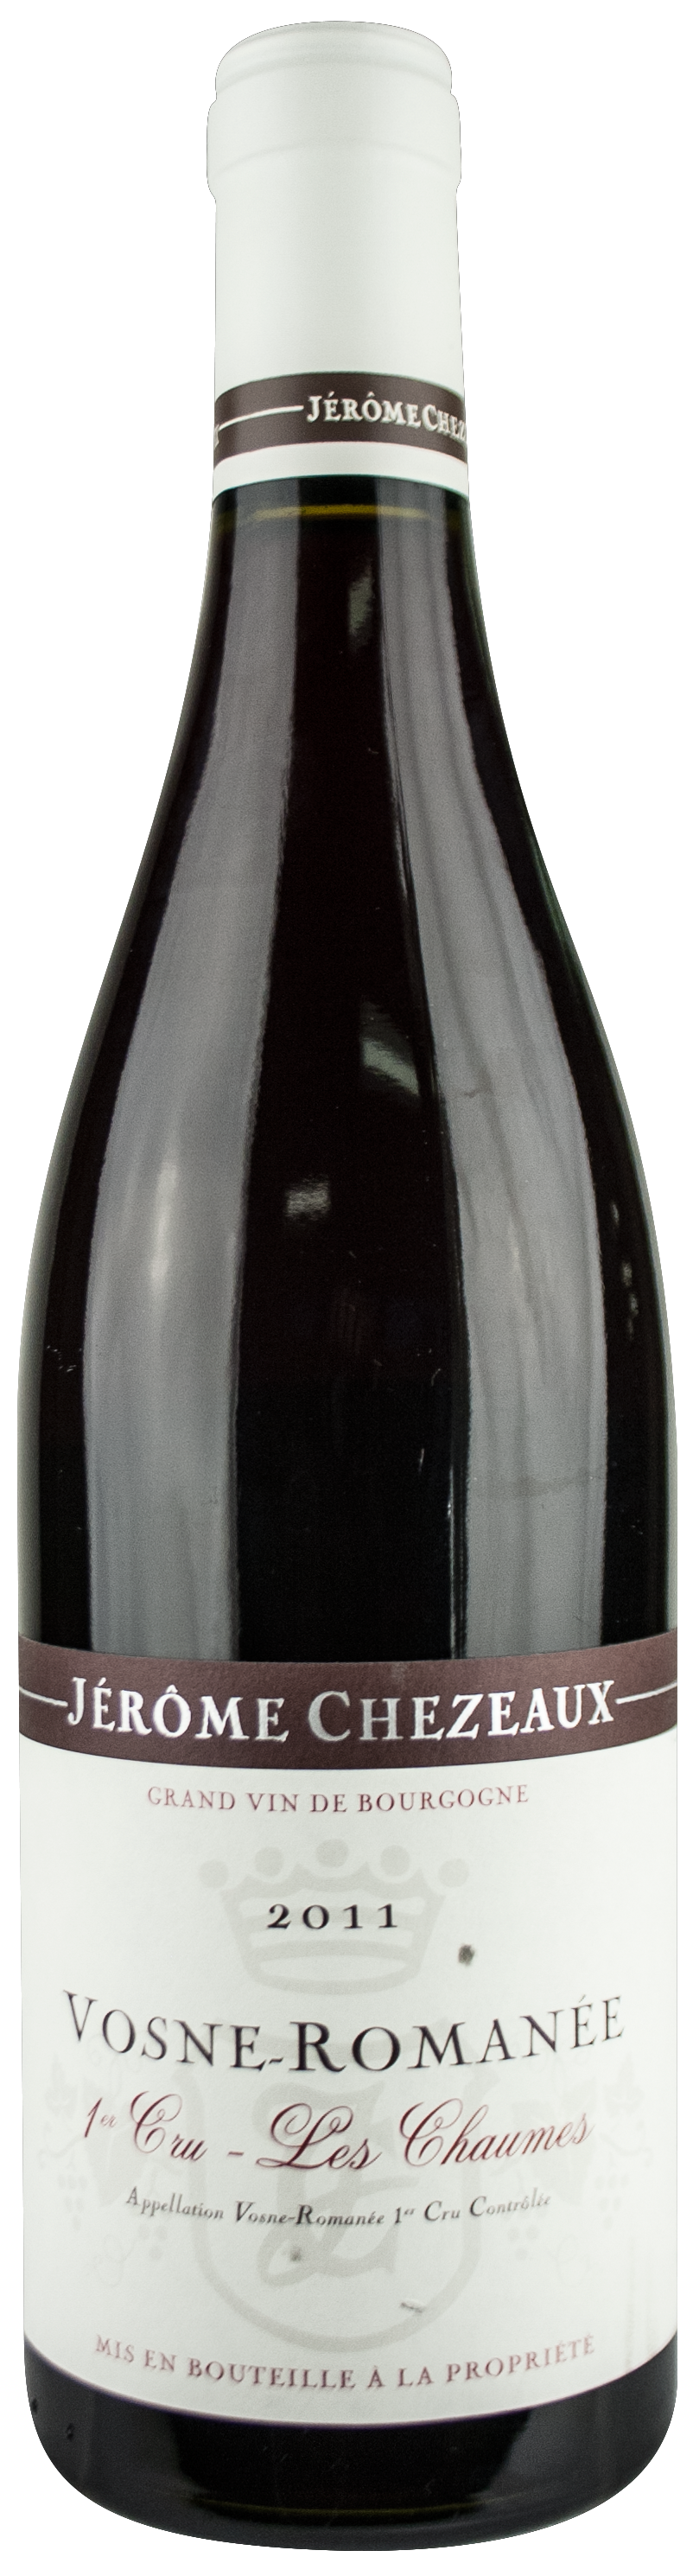 A picture of the bottle